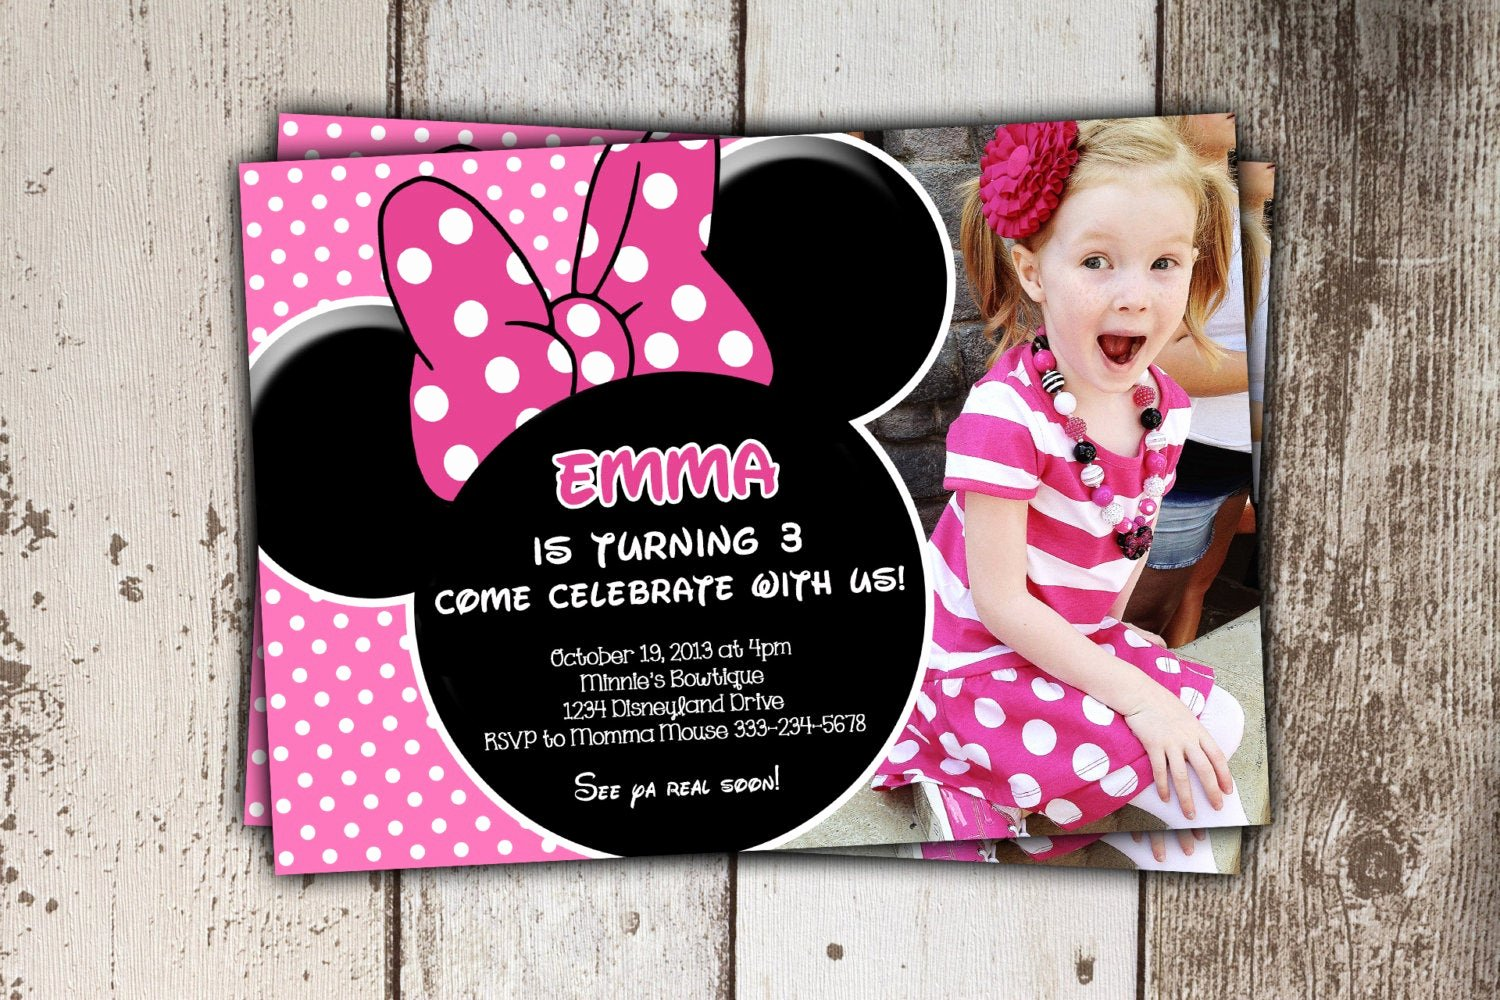 Minnie Mouse Red Invitations Lovely Minnie Mouse Invitations Pink Birthday Invitations with